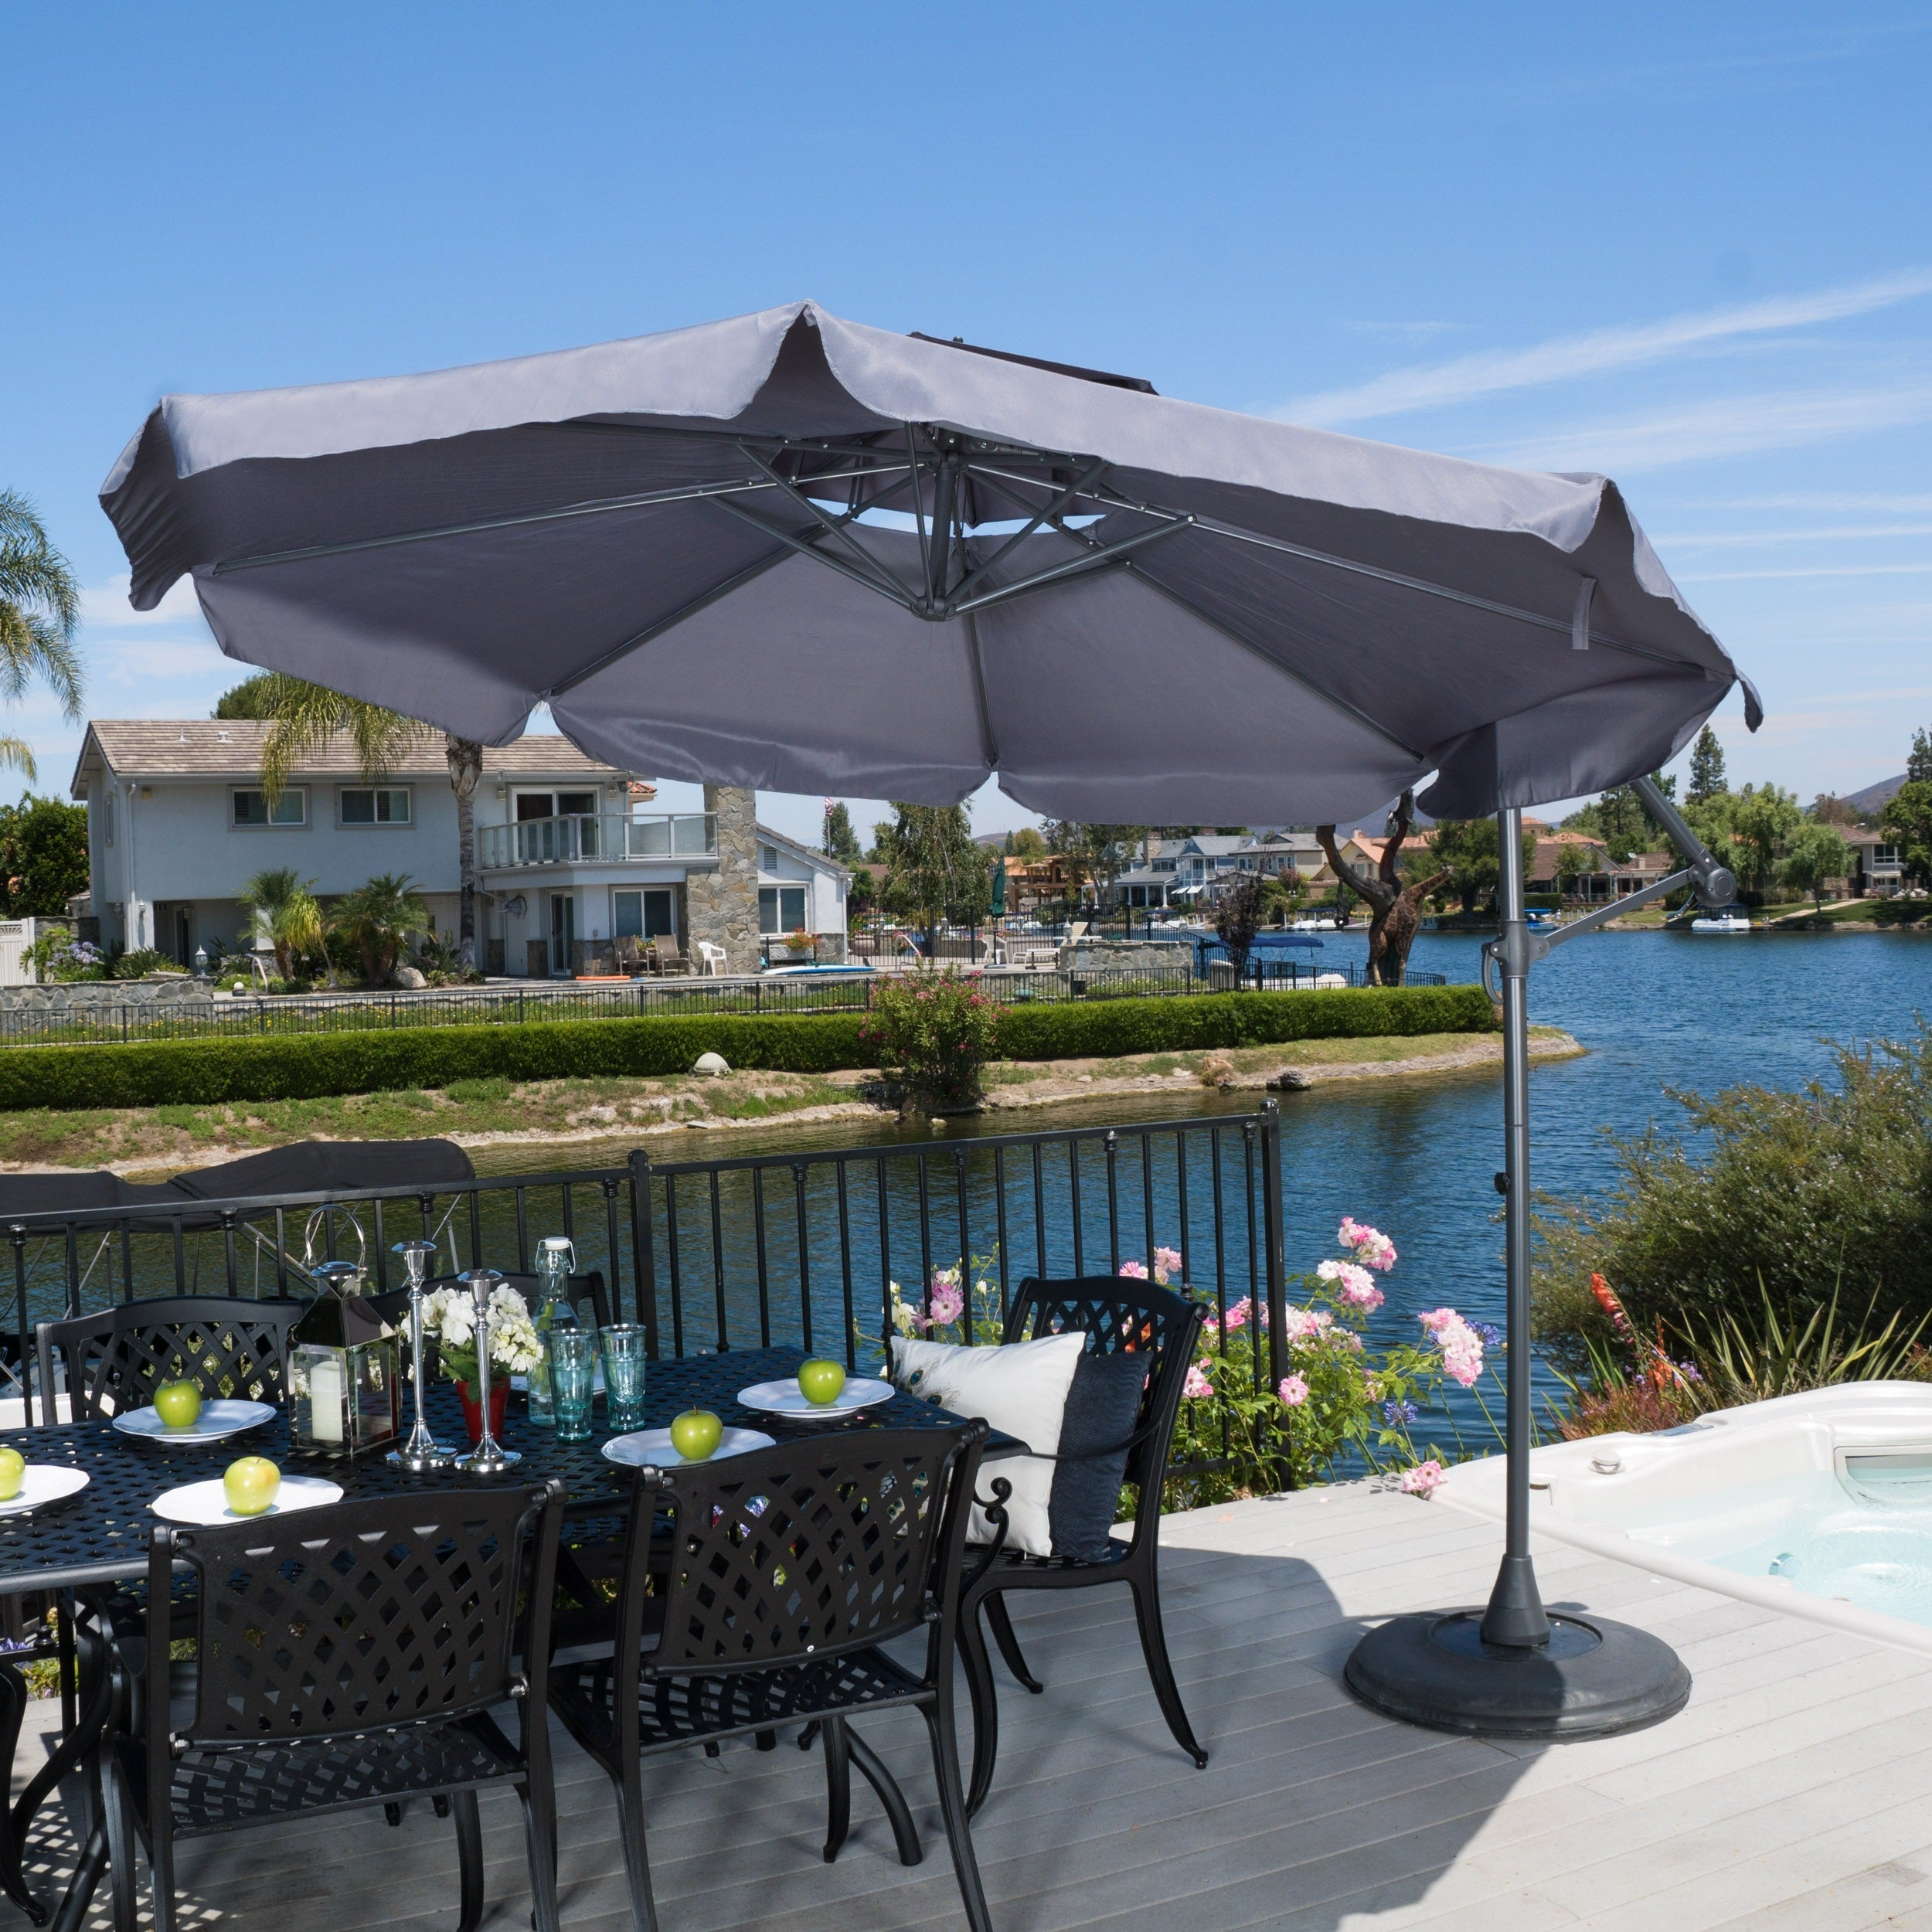 Outdoor Baja Banana Canopy Umbrella with Base by Christopher Knight Home - Free Shipping Today - Overstock.com - 16738517 & Outdoor Baja Banana Canopy Umbrella with Base by Christopher ...